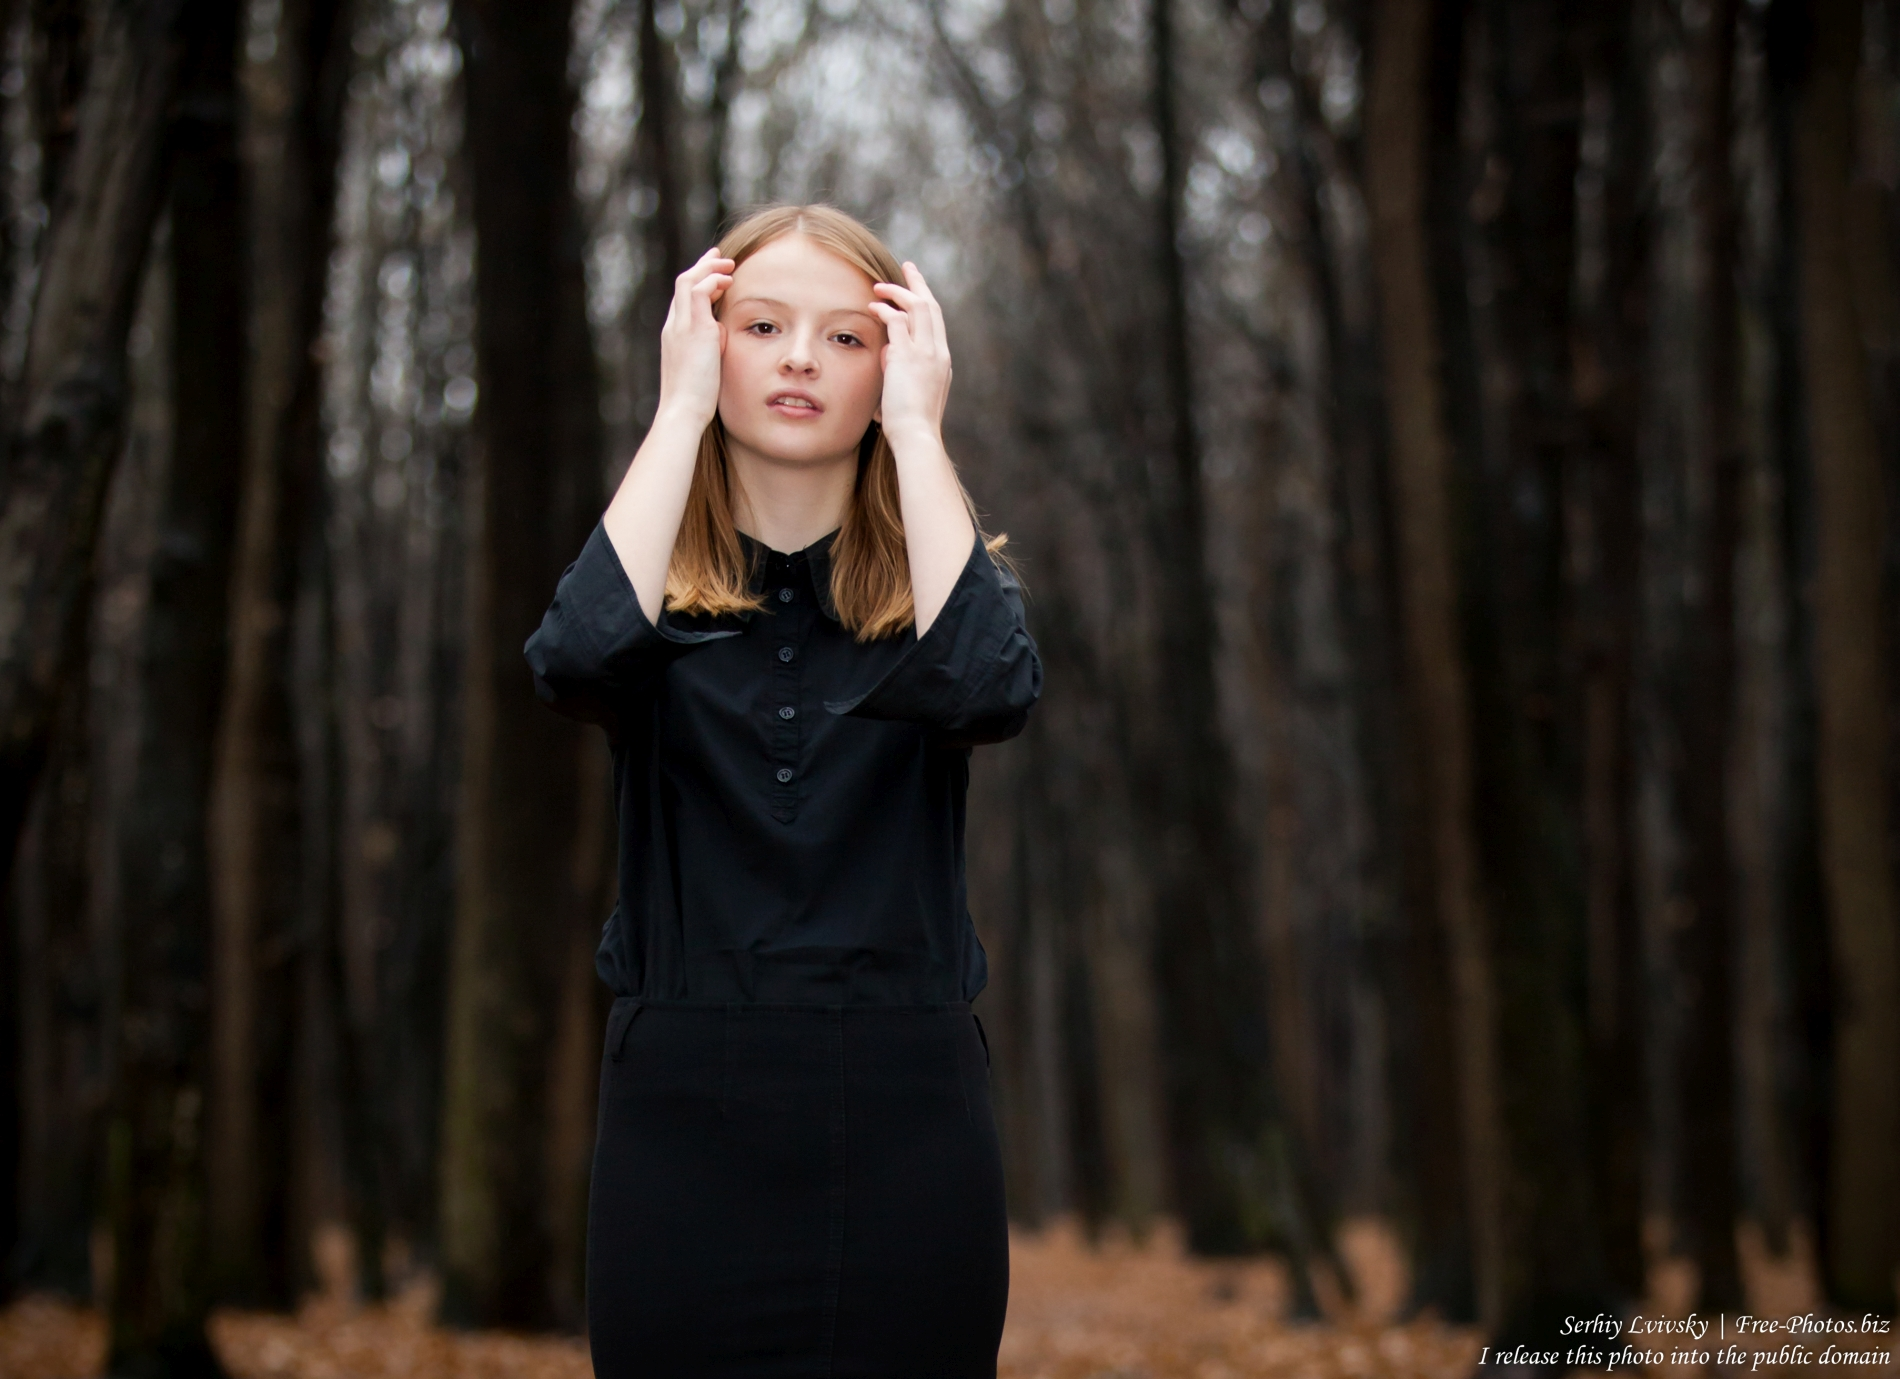 a_13-year-old_catholic_girl_photographed_by_serhiy_lvivsky_in_november_2015_04